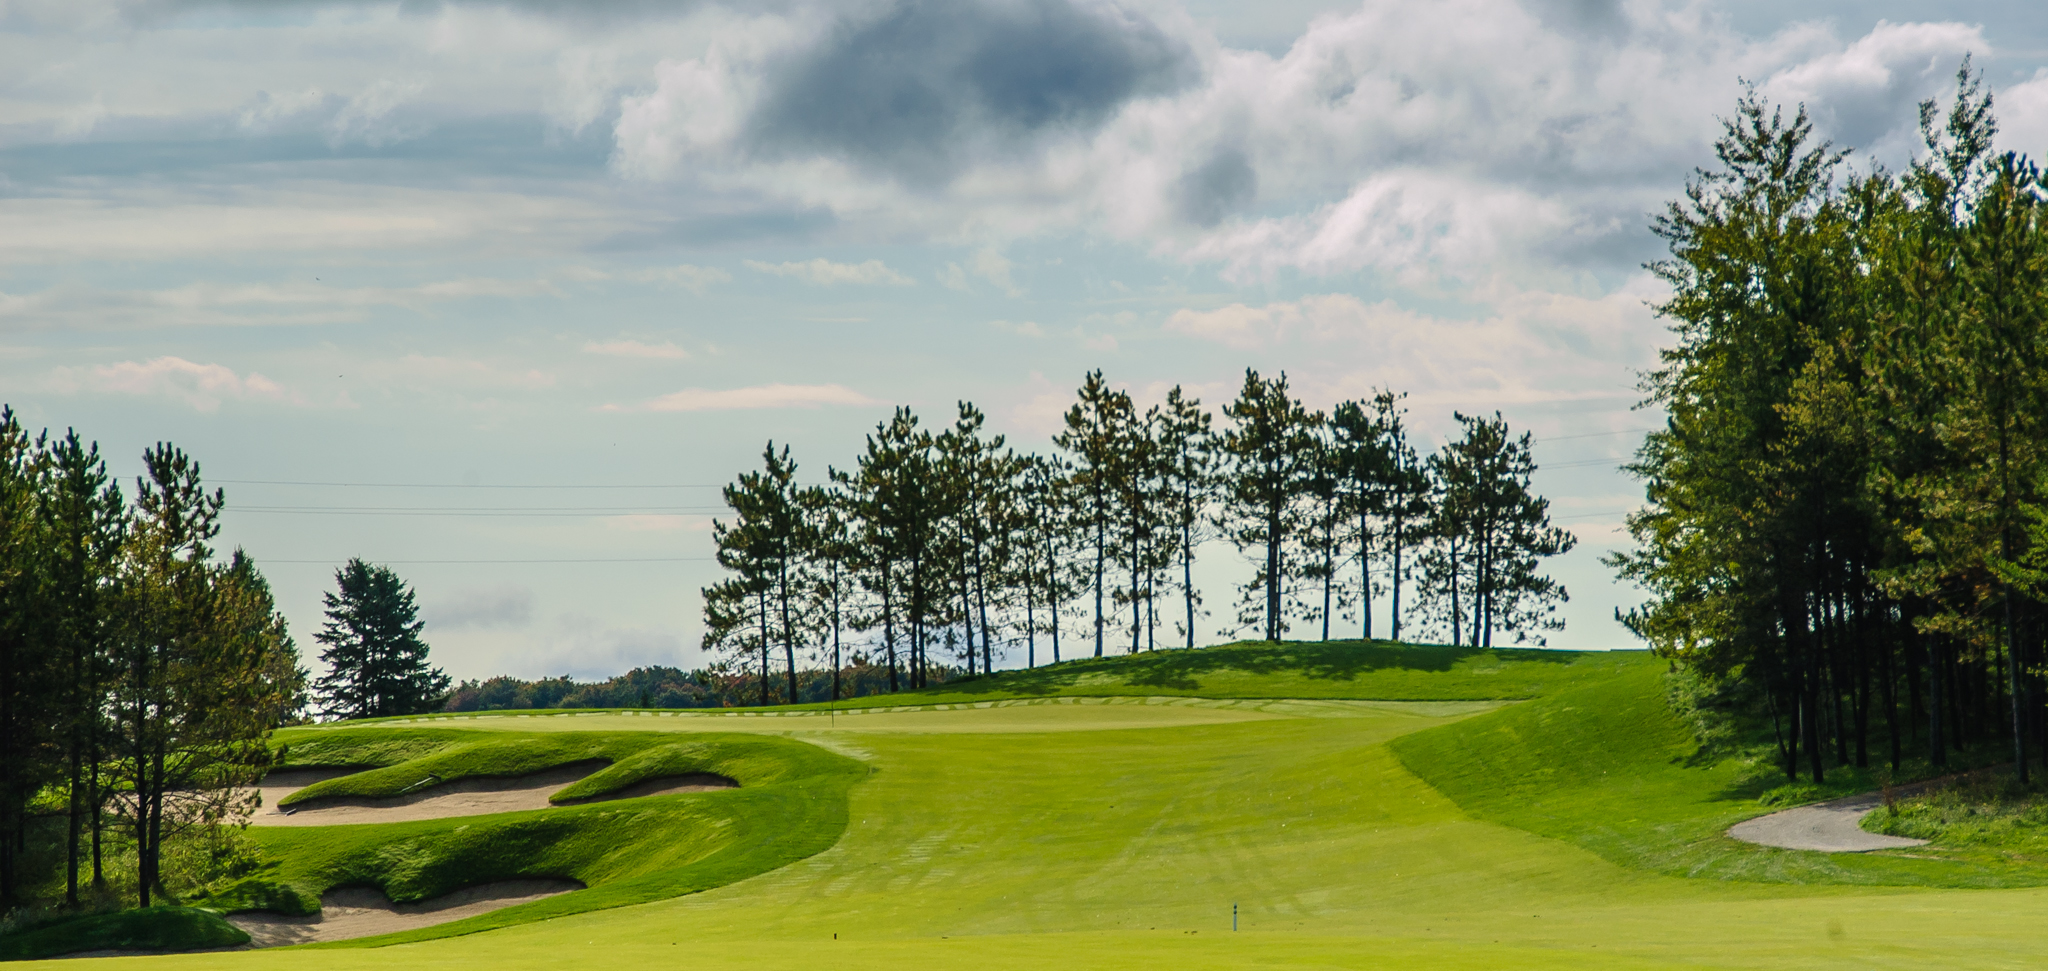 Approaching the ninth green (Photo by Martin Ojaste)